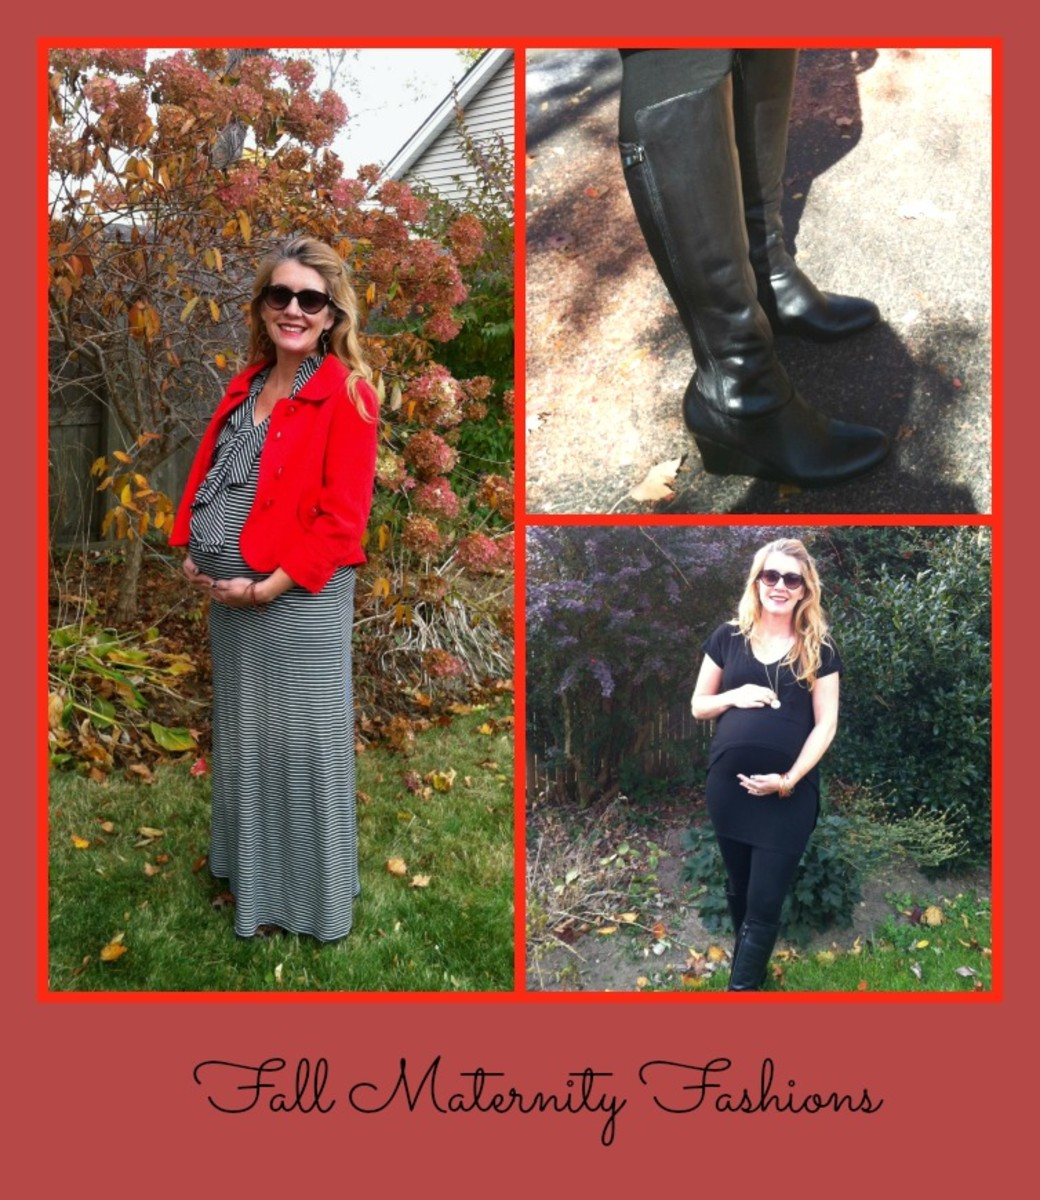 fall maternity fashions, umberto raffini signature, 4th love, au lait, the walking company